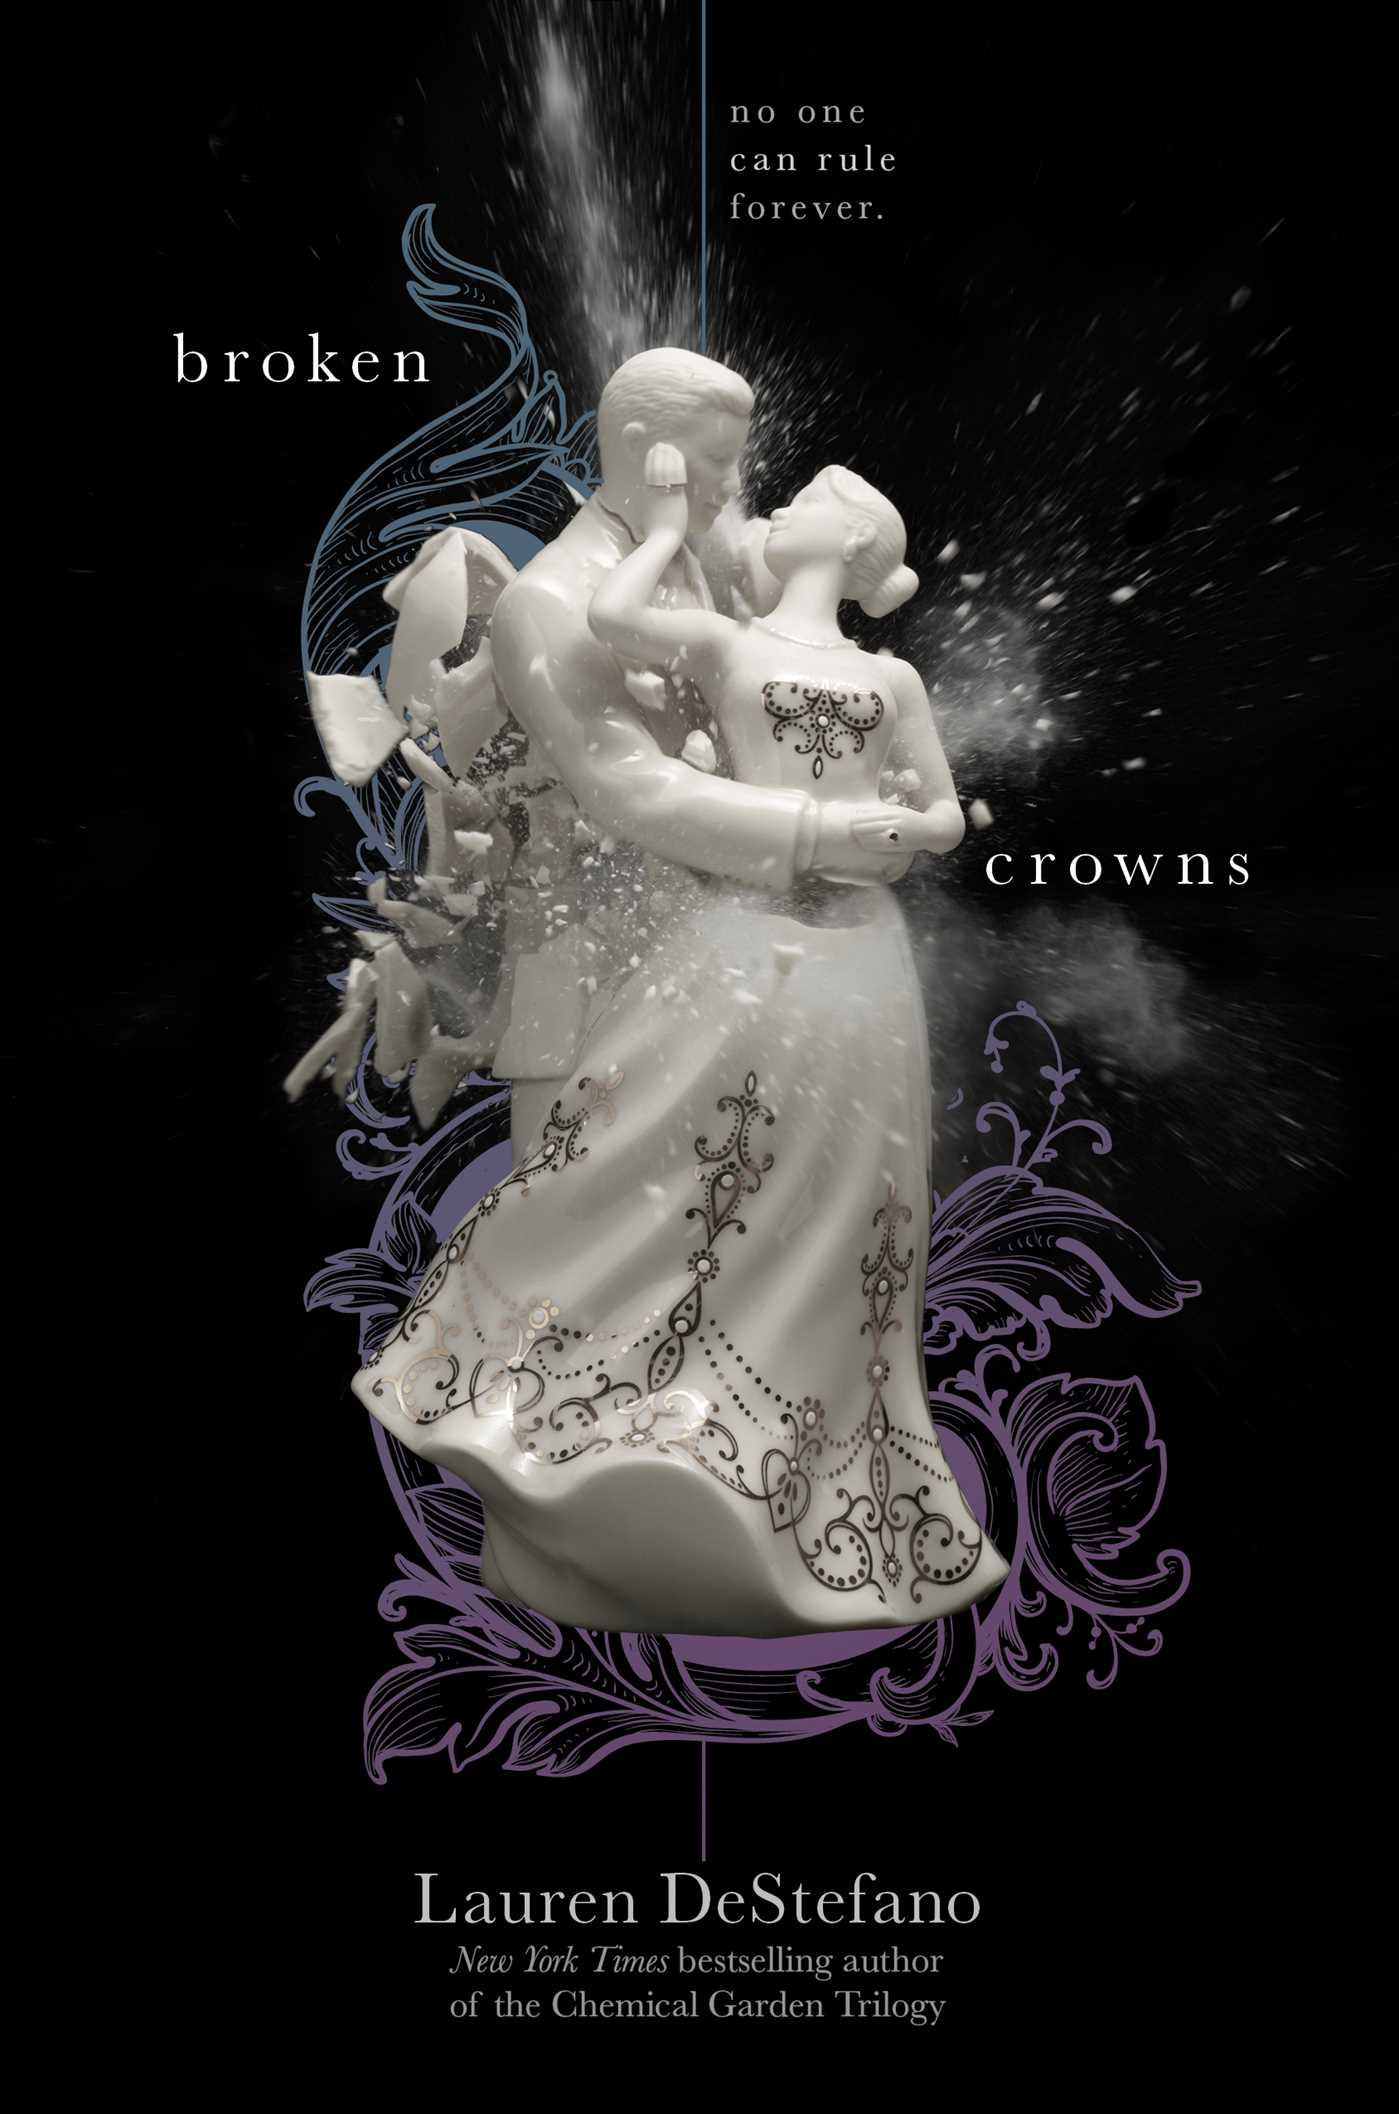 Broken crowns 9781442496439 hr